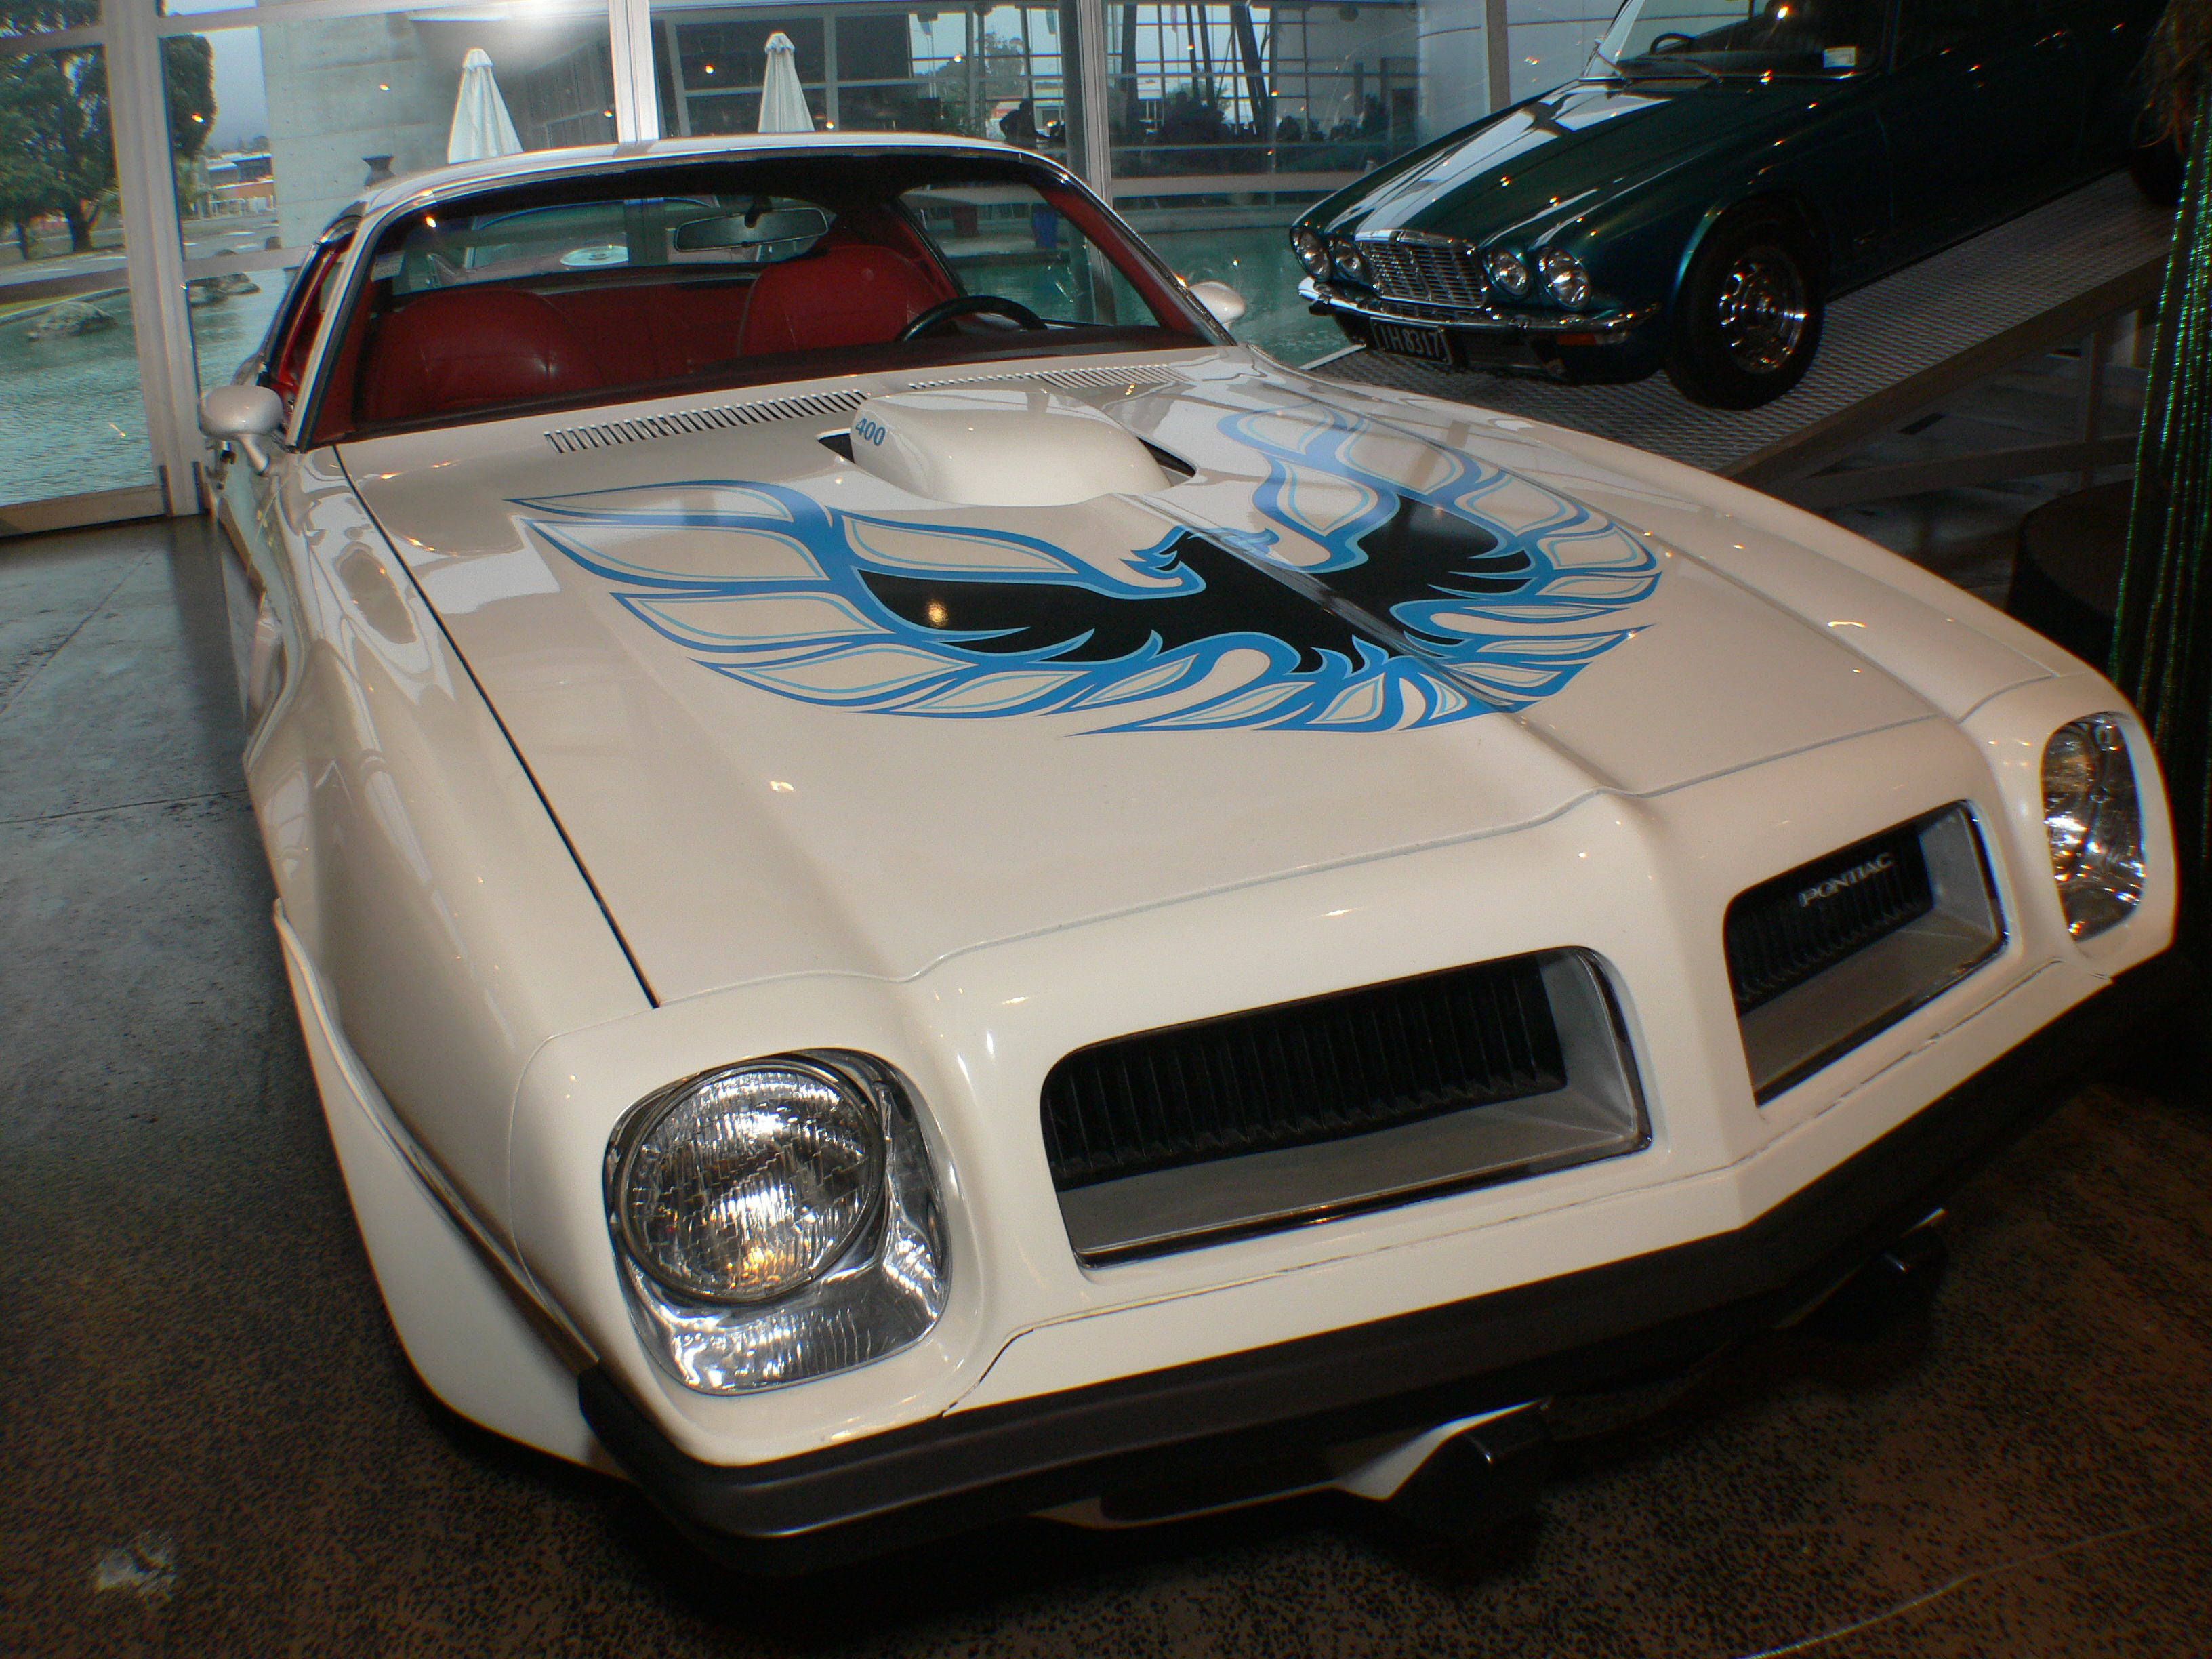 Pontiac trans am firebird 400 1974 photo